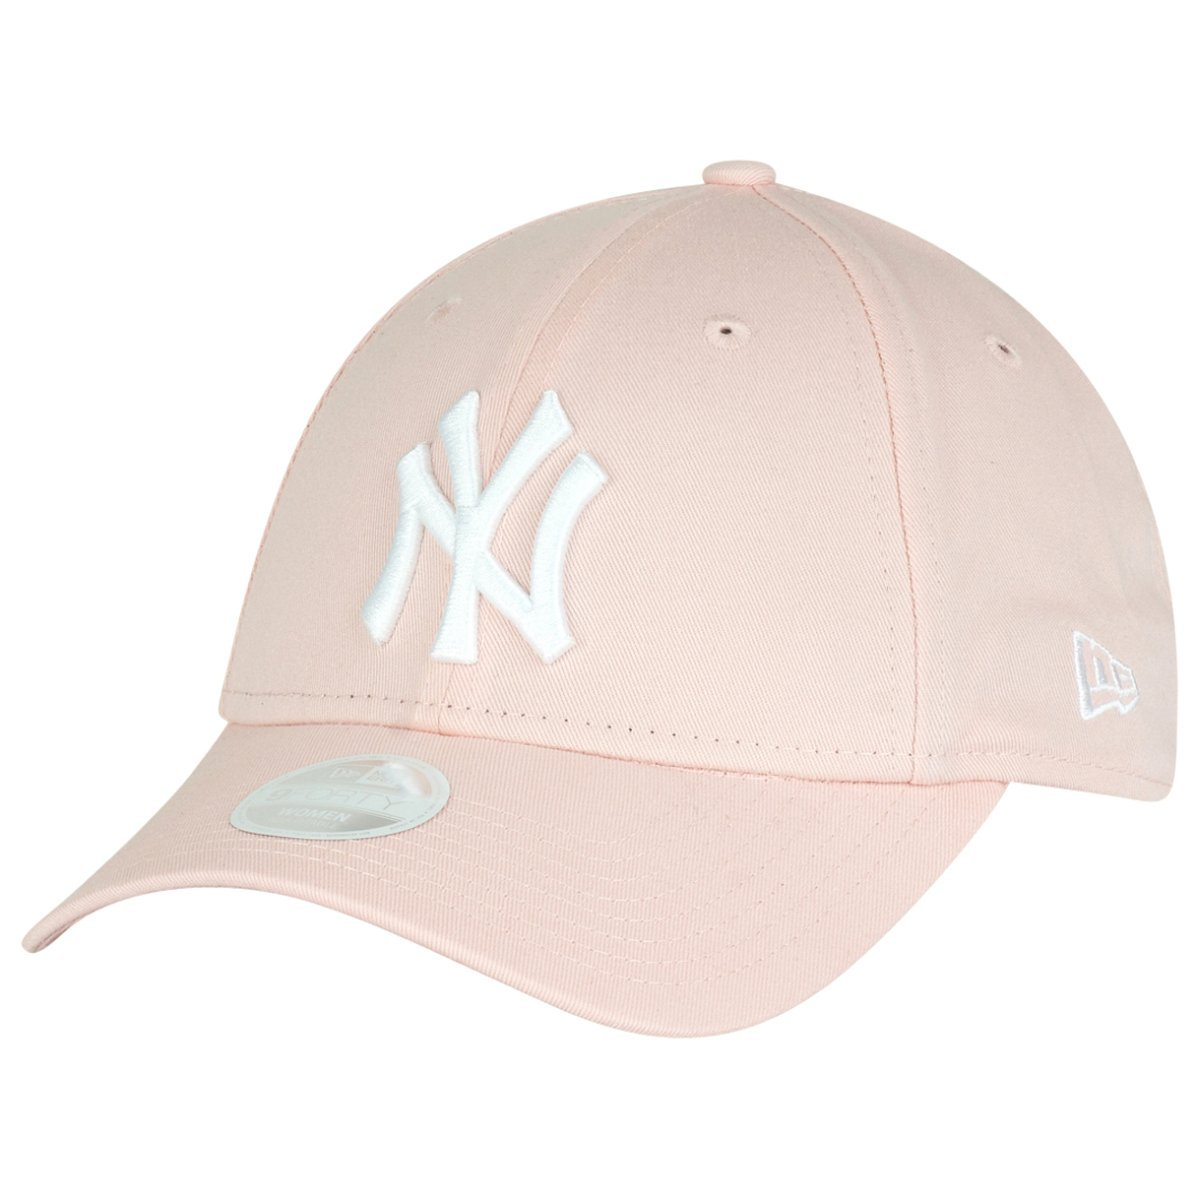 Womens 9forty New York Yankees Baseball Cap Pink